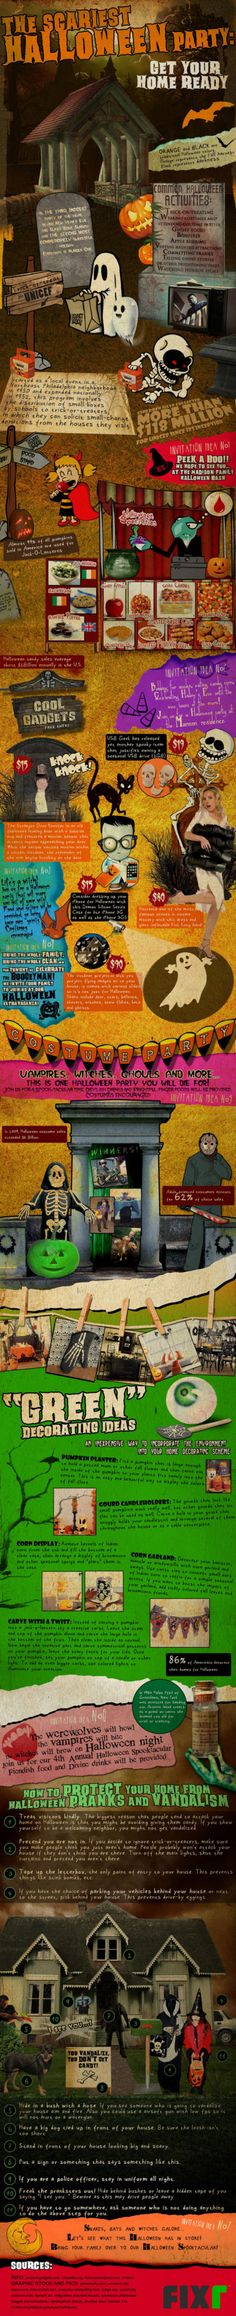 the scariest halloween party httpwwwcoolinfoimagescominfographics - Crazy Halloween Facts